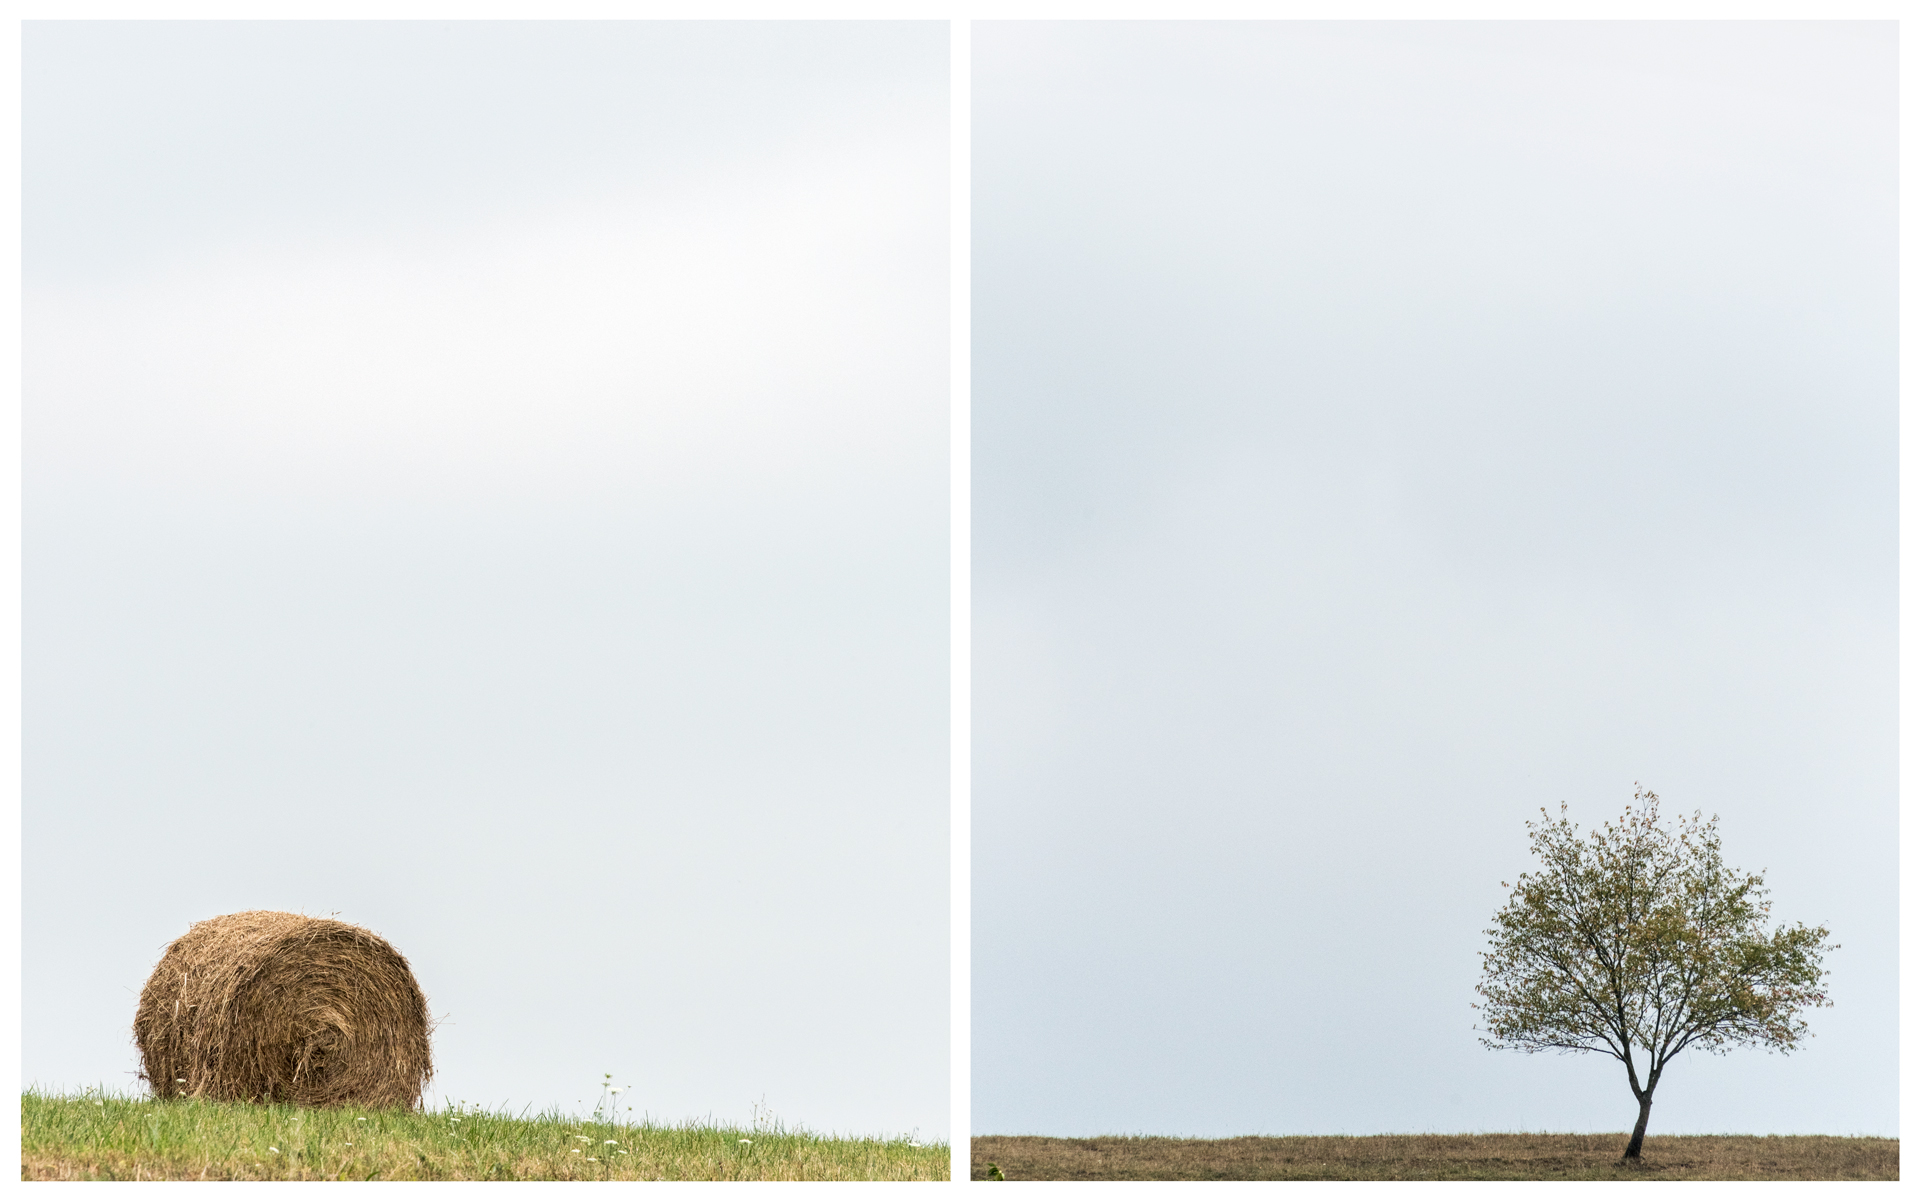 Hay Bale and Tree